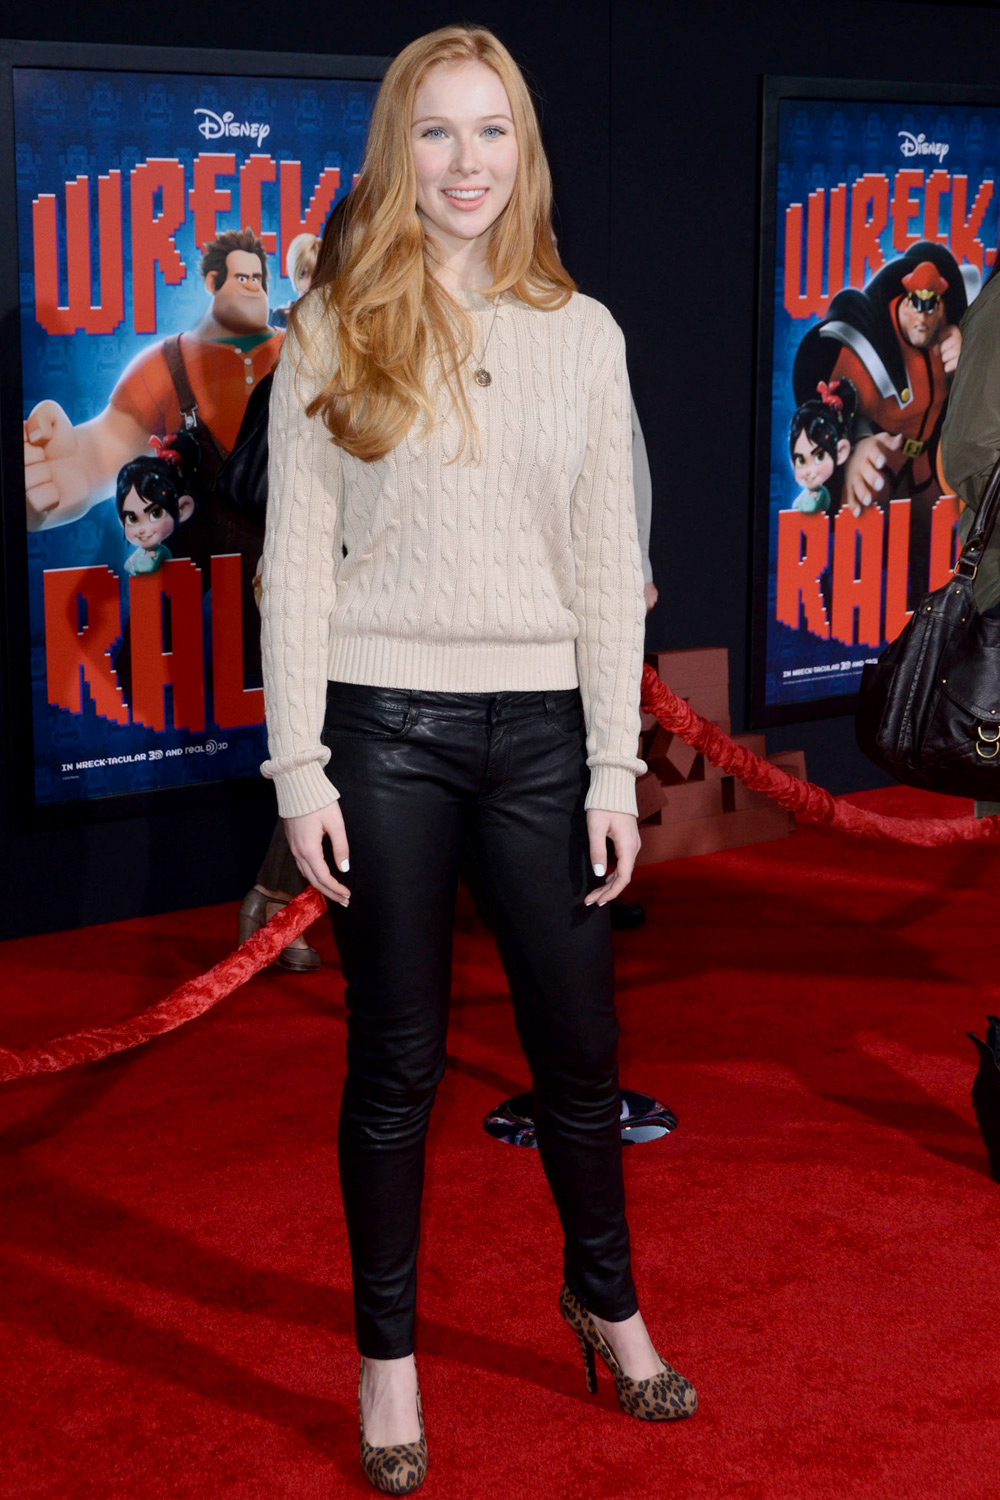 Molly Quinn at the Los Angeles premiere of Wreck-It Ralph